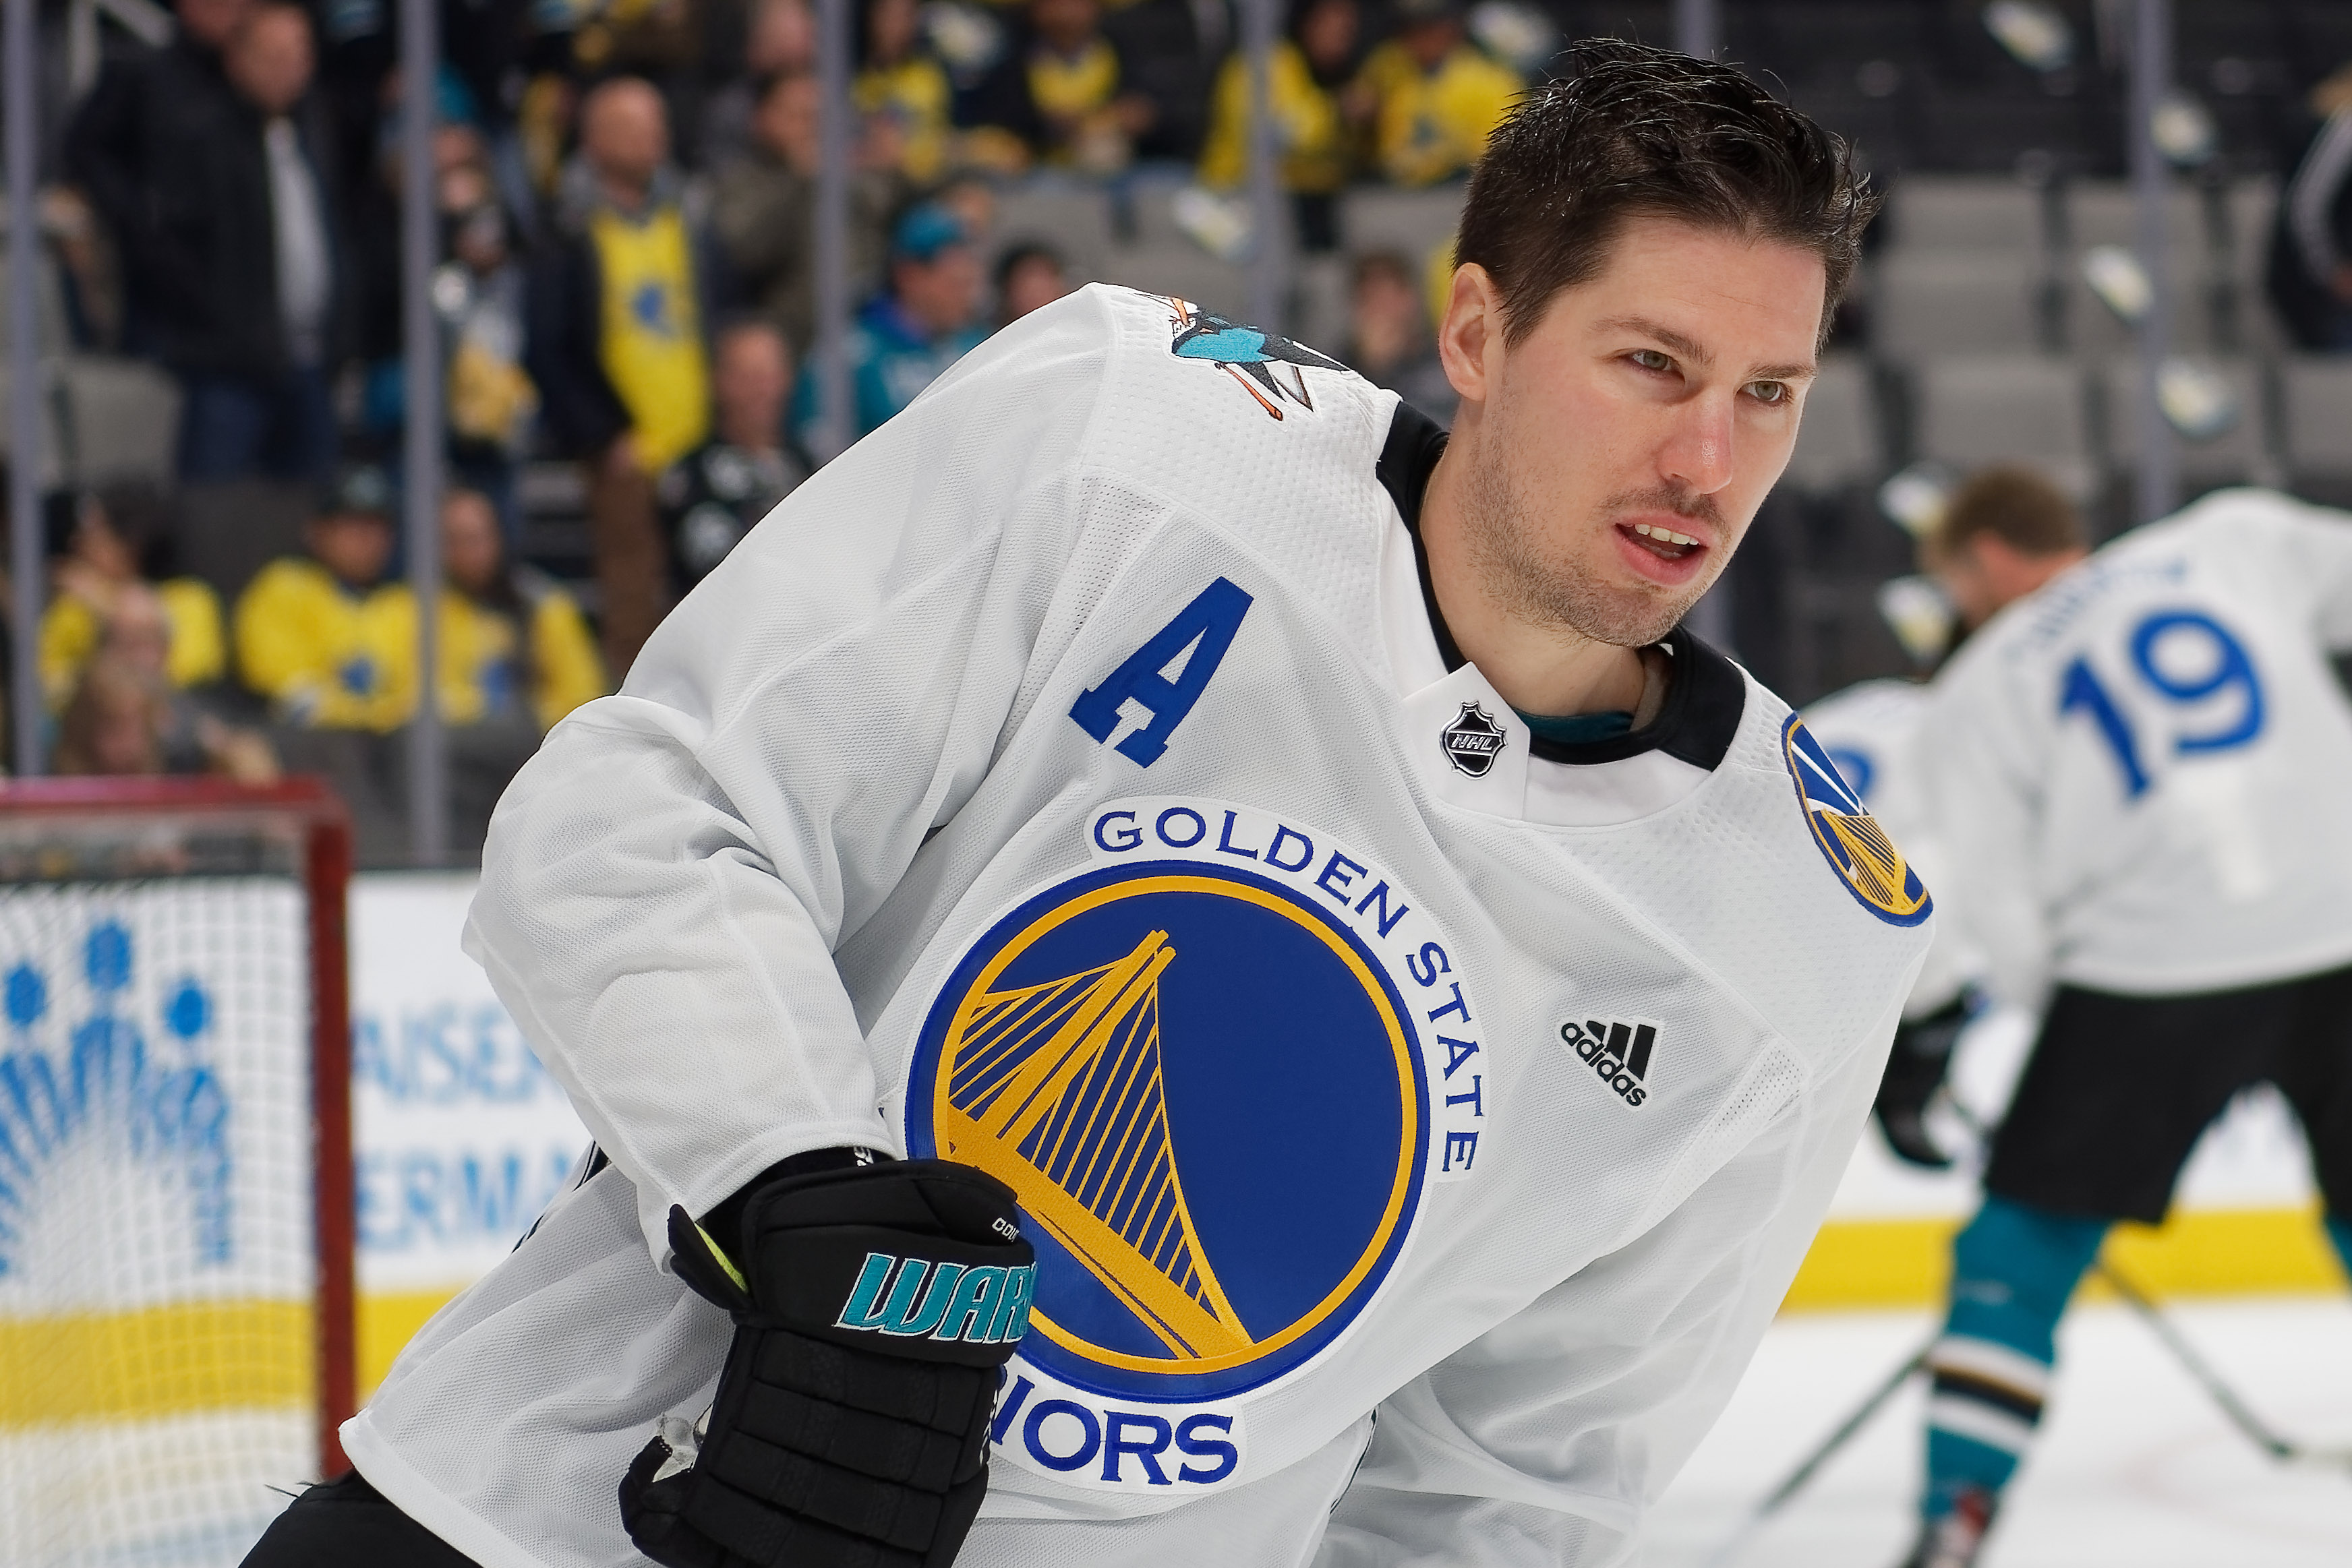 Feb 16, 2019; San Jose, CA, USA; San Jose Sharks center Logan Couture (39) skates in a Golden State Warriors jersey prior to a game against the Vancouver Canucks at SAP Center at San Jose.